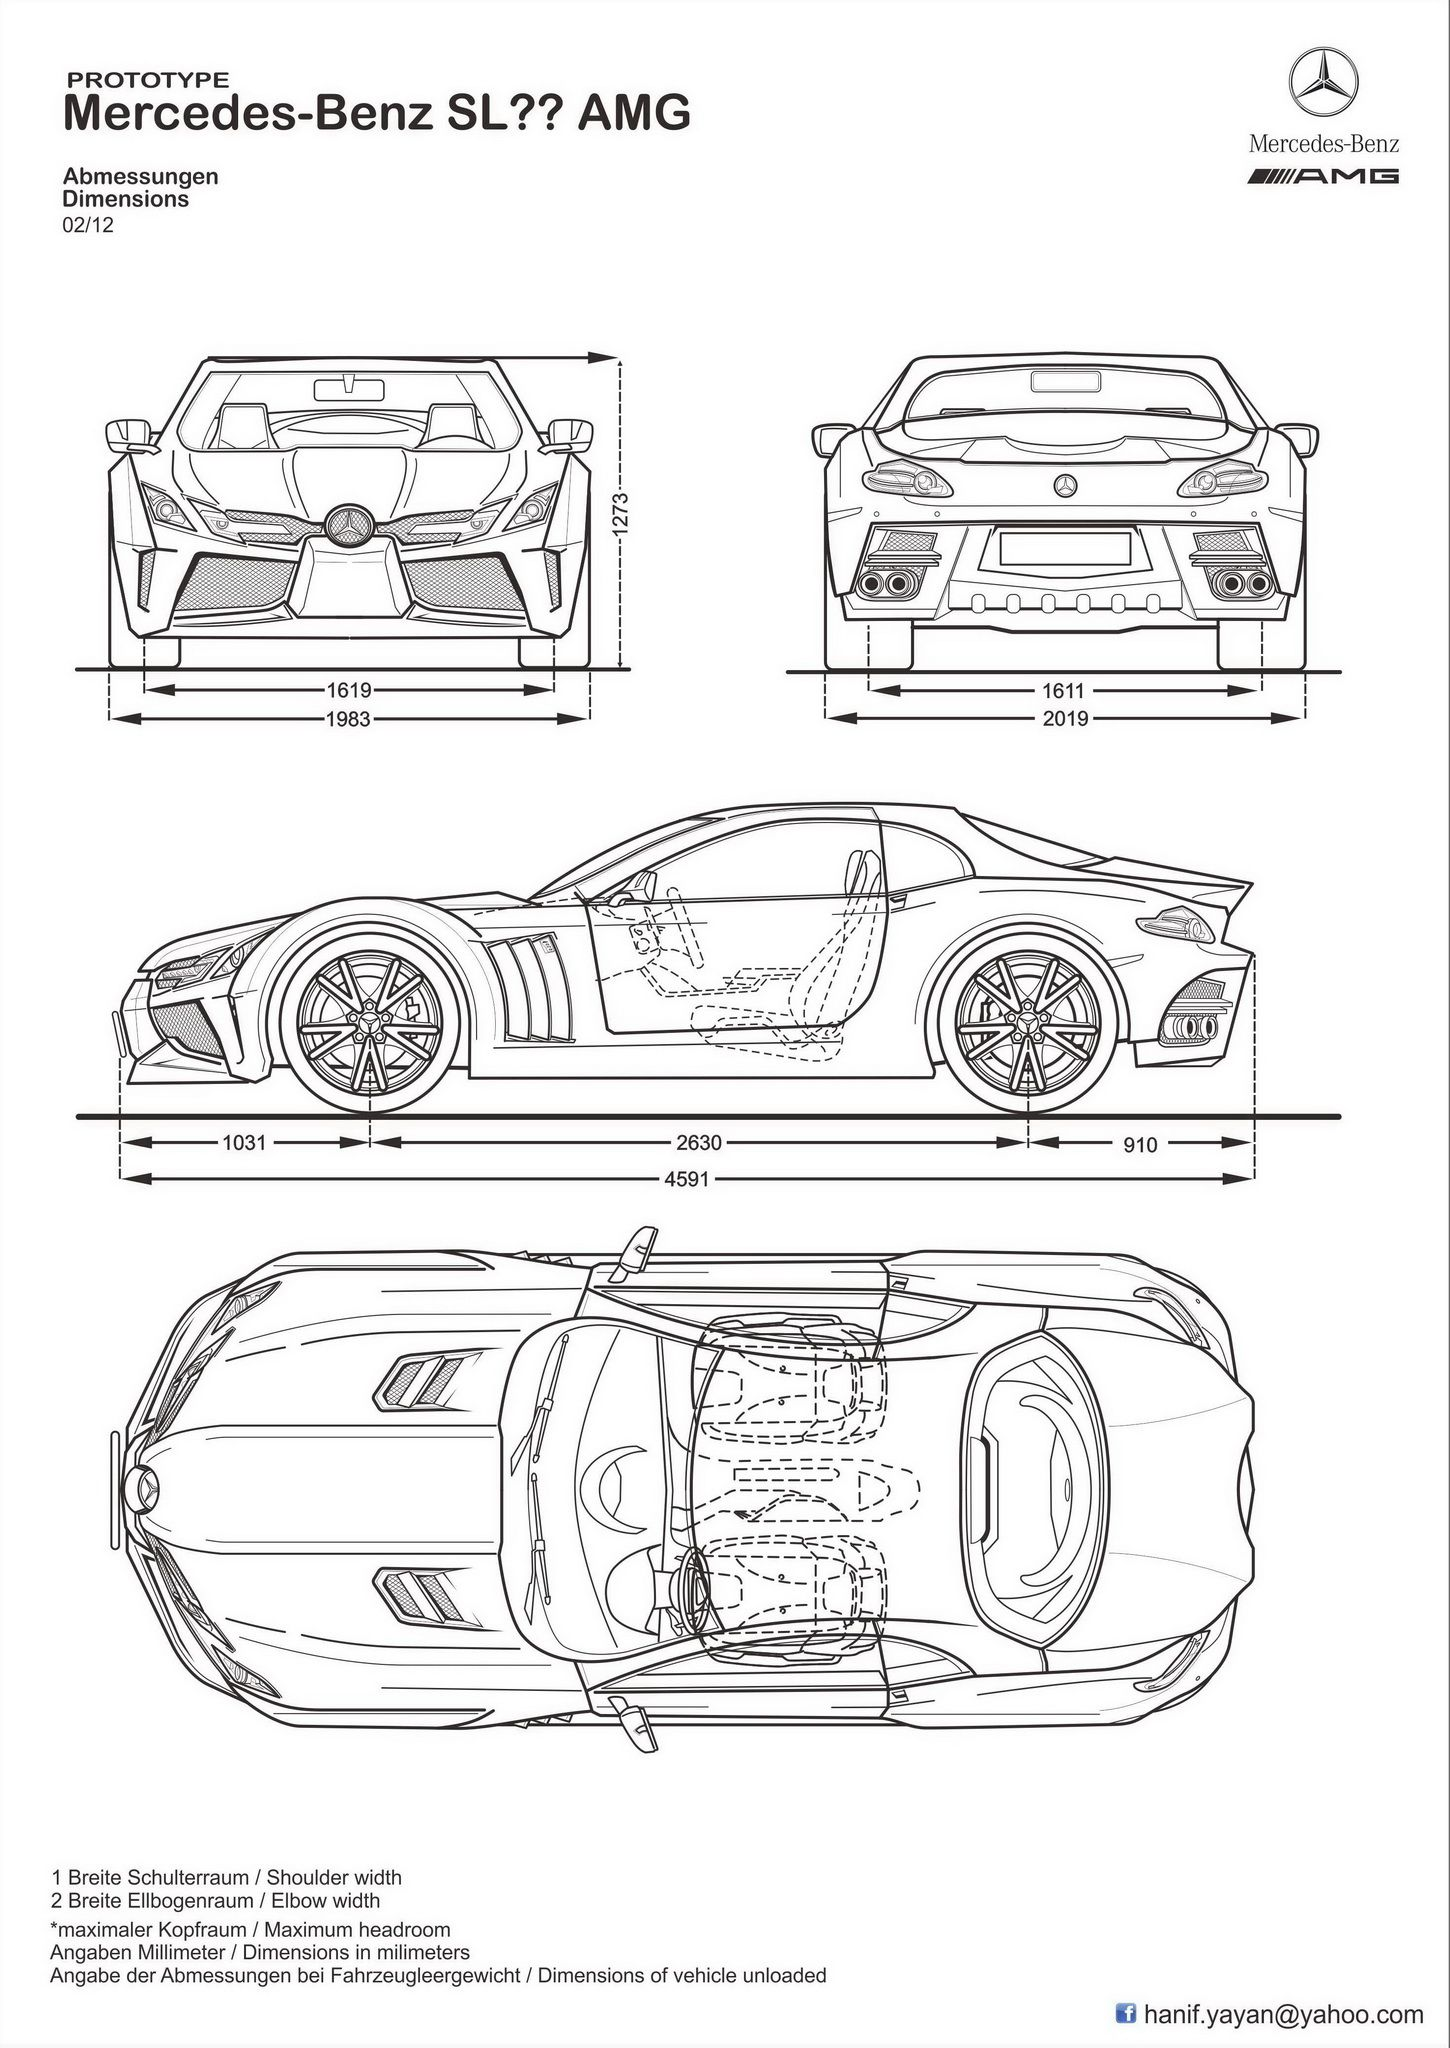 Mercedes benz sl amg concept blueprints by hanif yayan on mercedes benz sl amg concept blueprints by hanif yayan on deviantart malvernweather Image collections